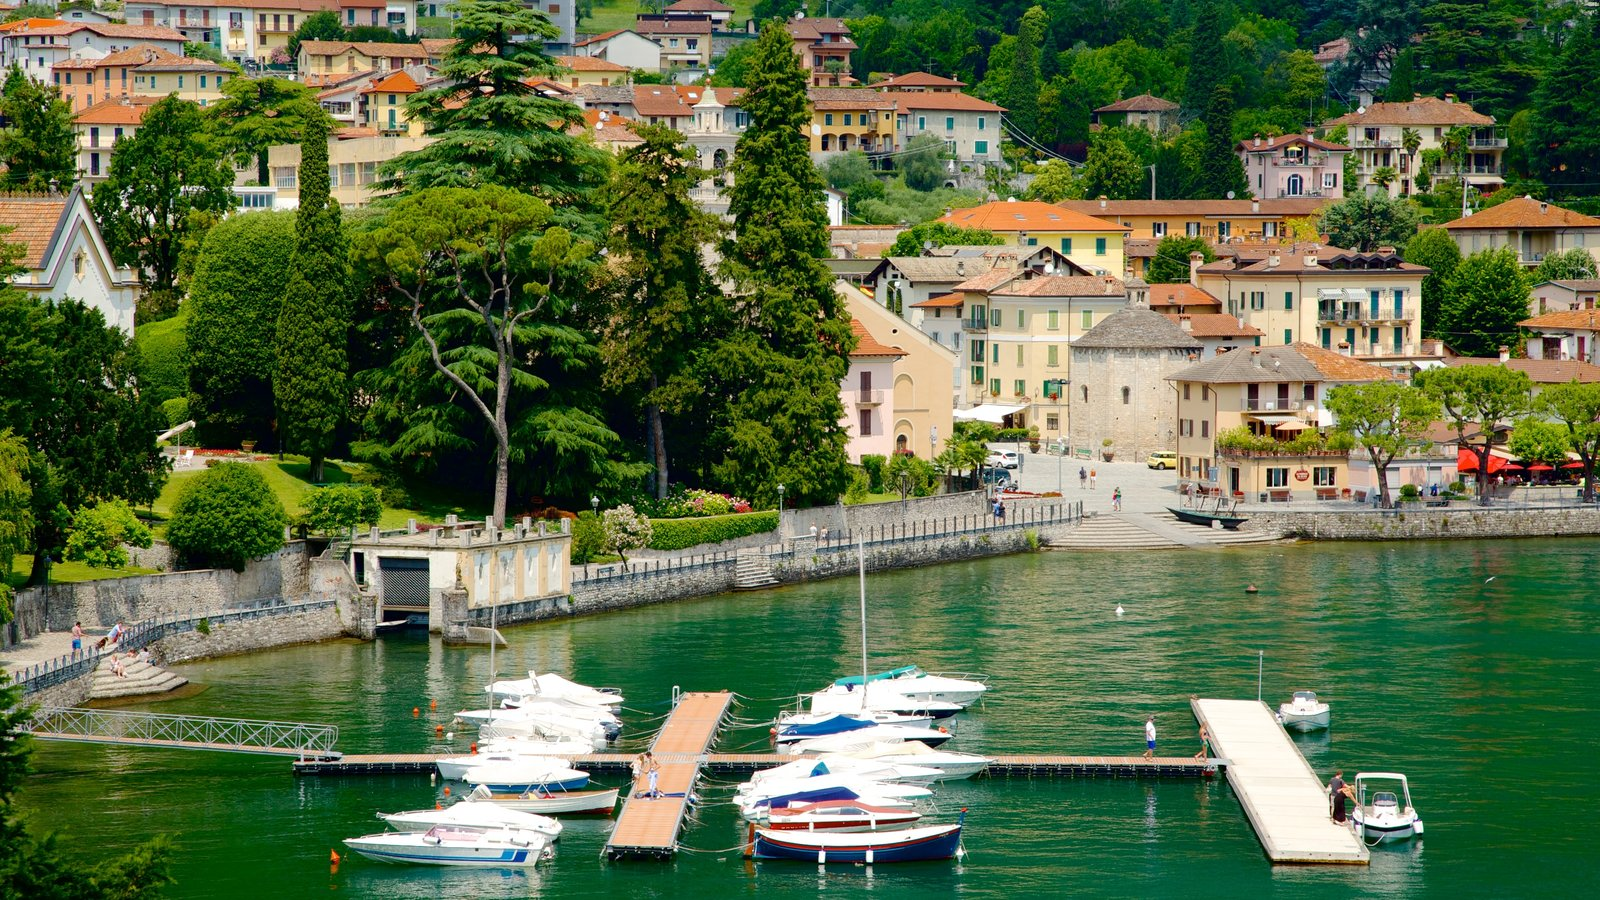 Como which includes a marina, boating and a bay or harbor